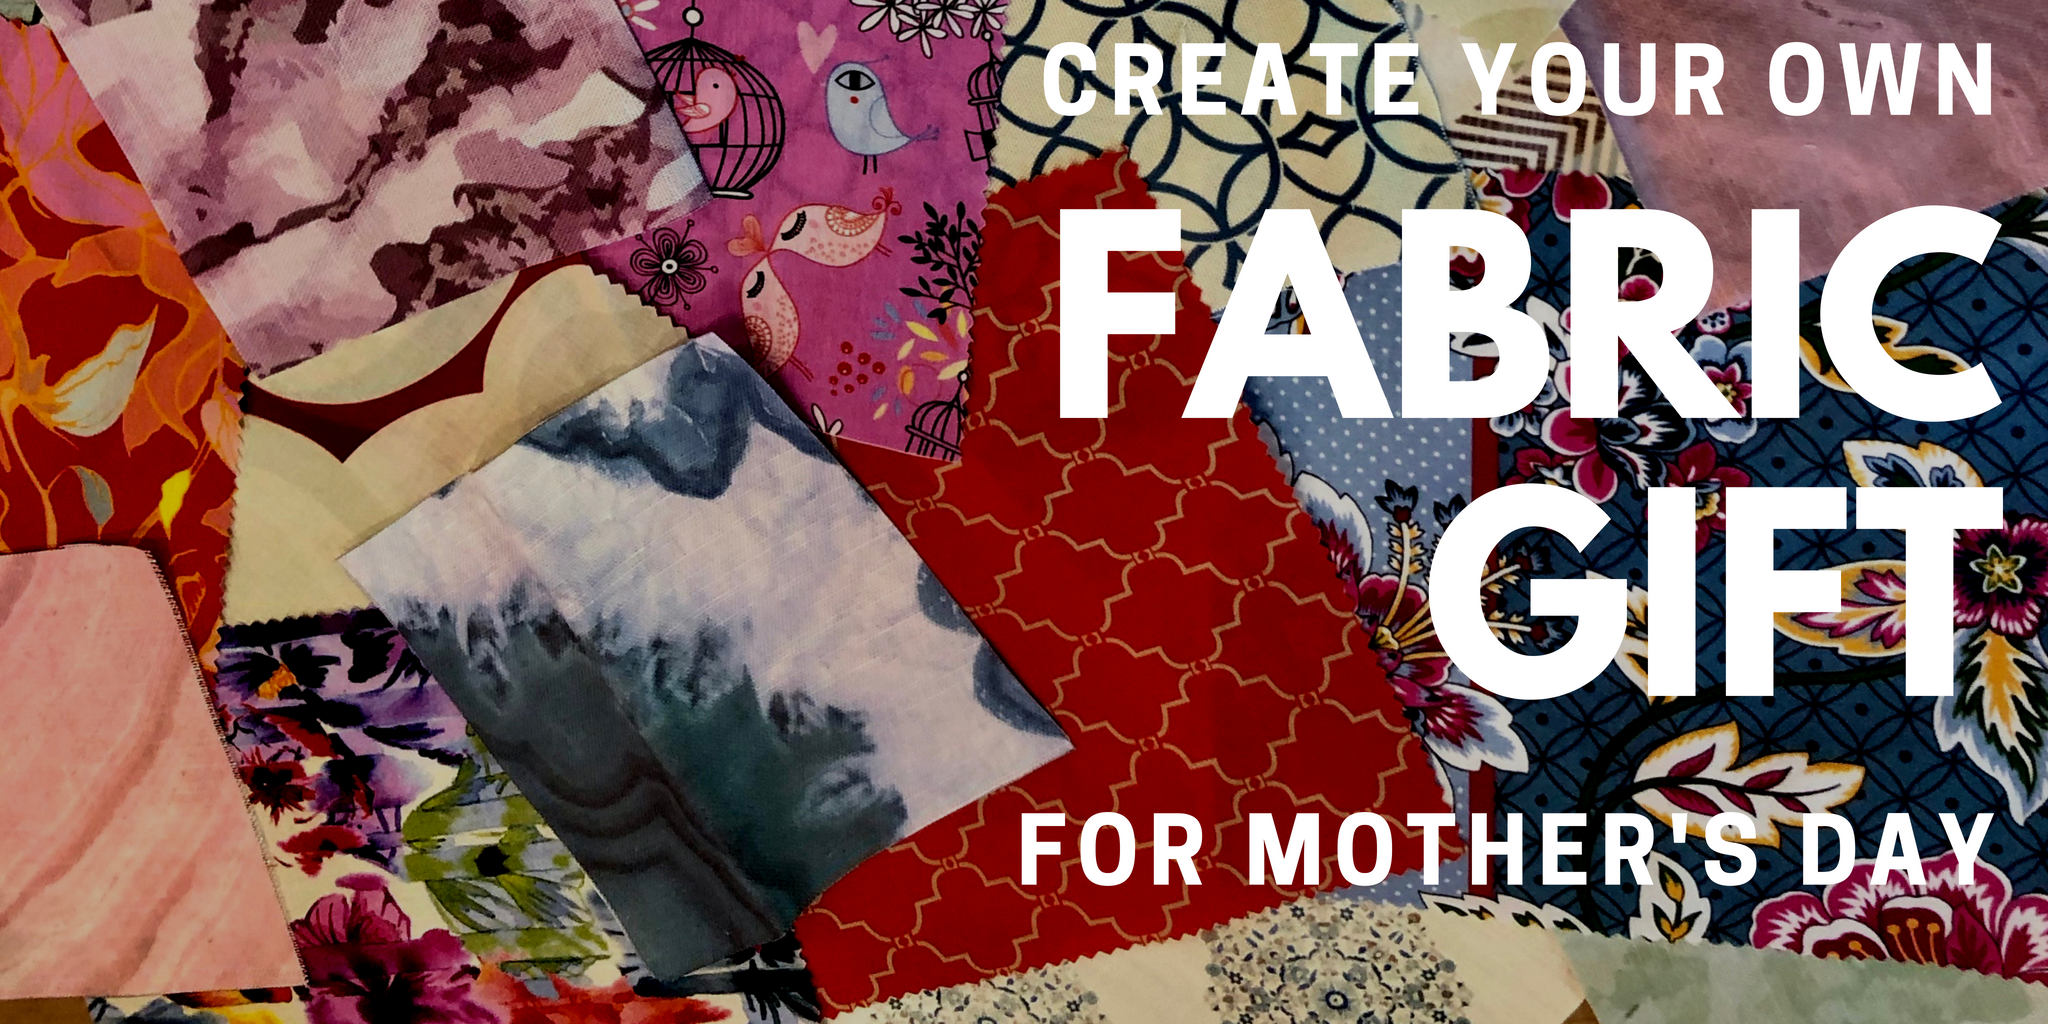 Create Your Own Fabric Gift For Mother's Day